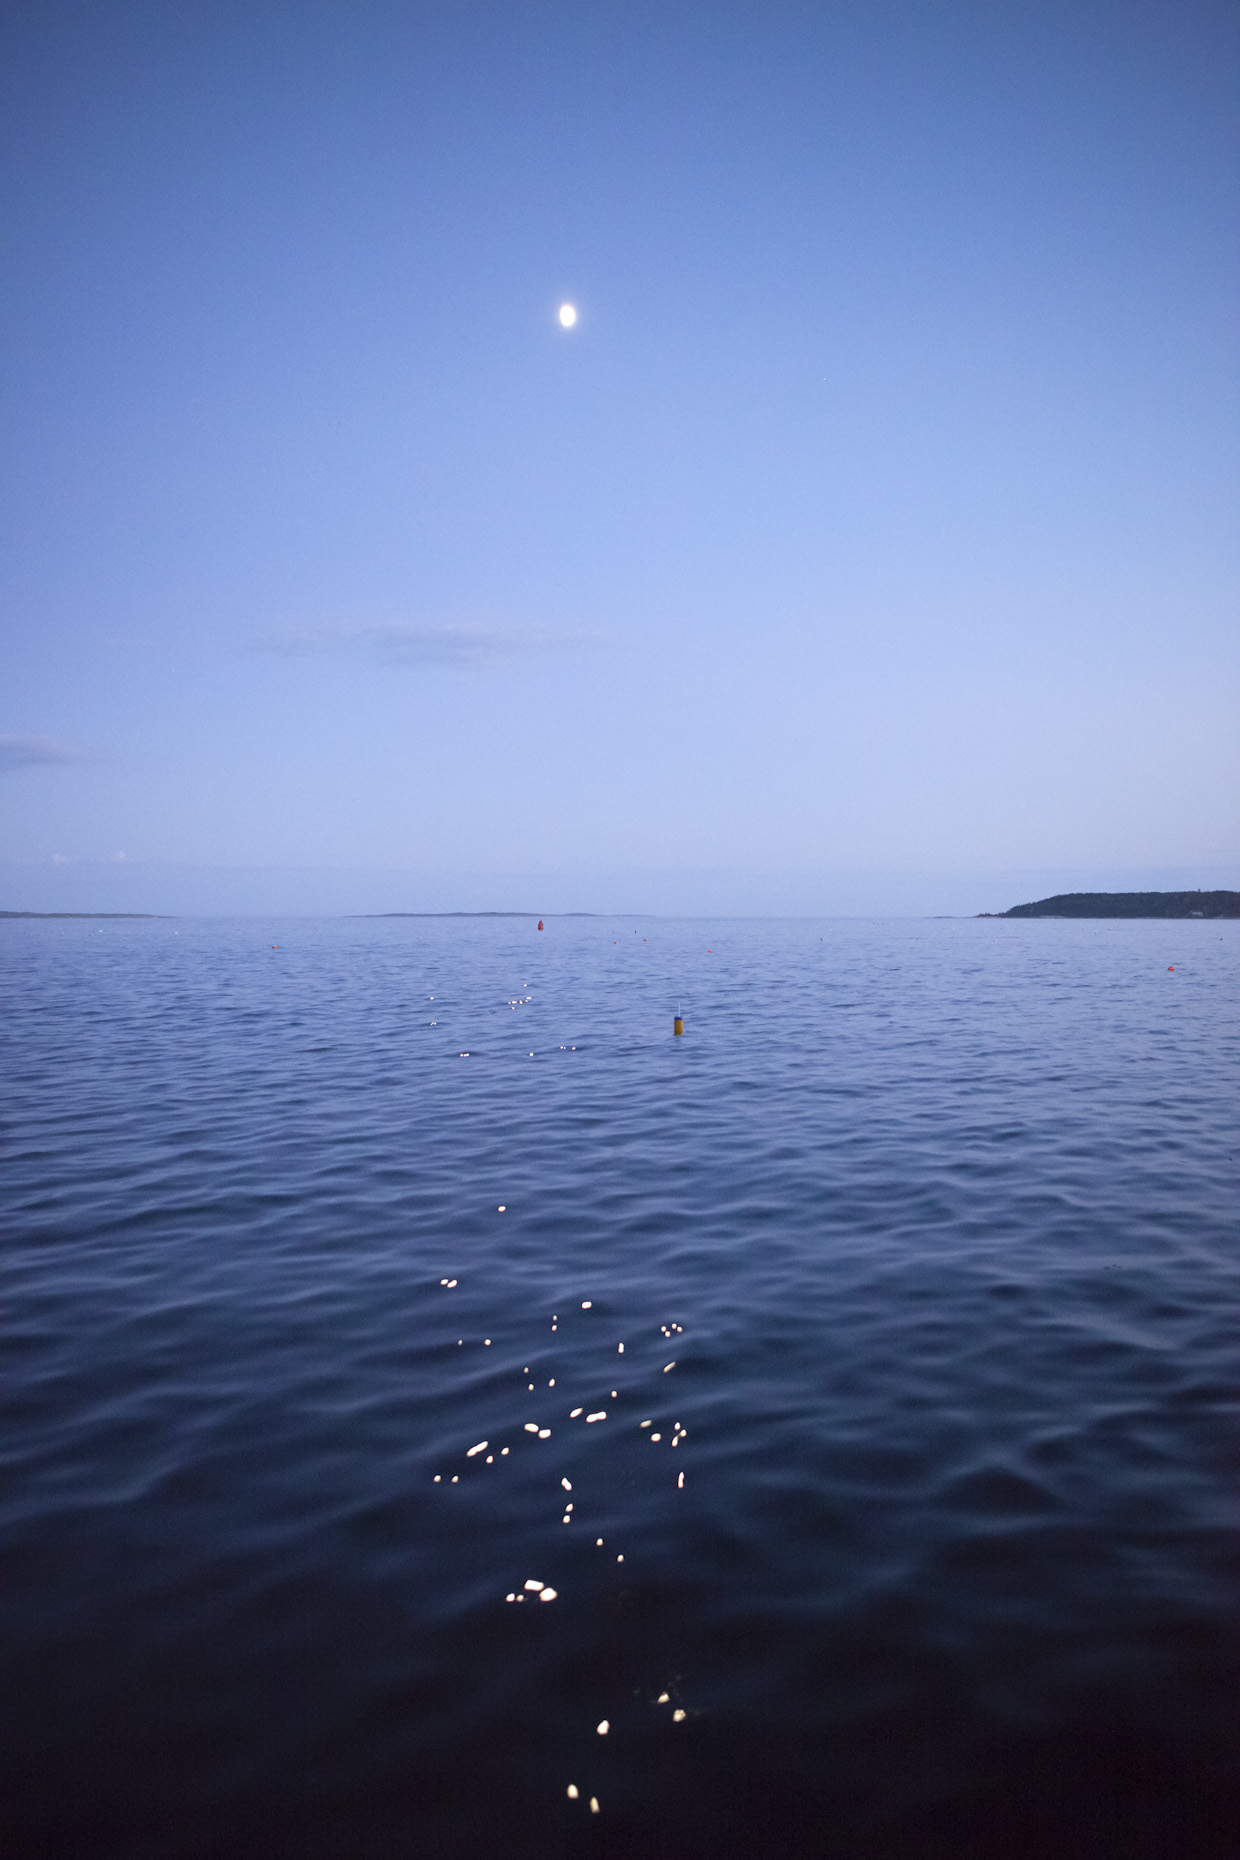 Moon Reflection on the Ocean